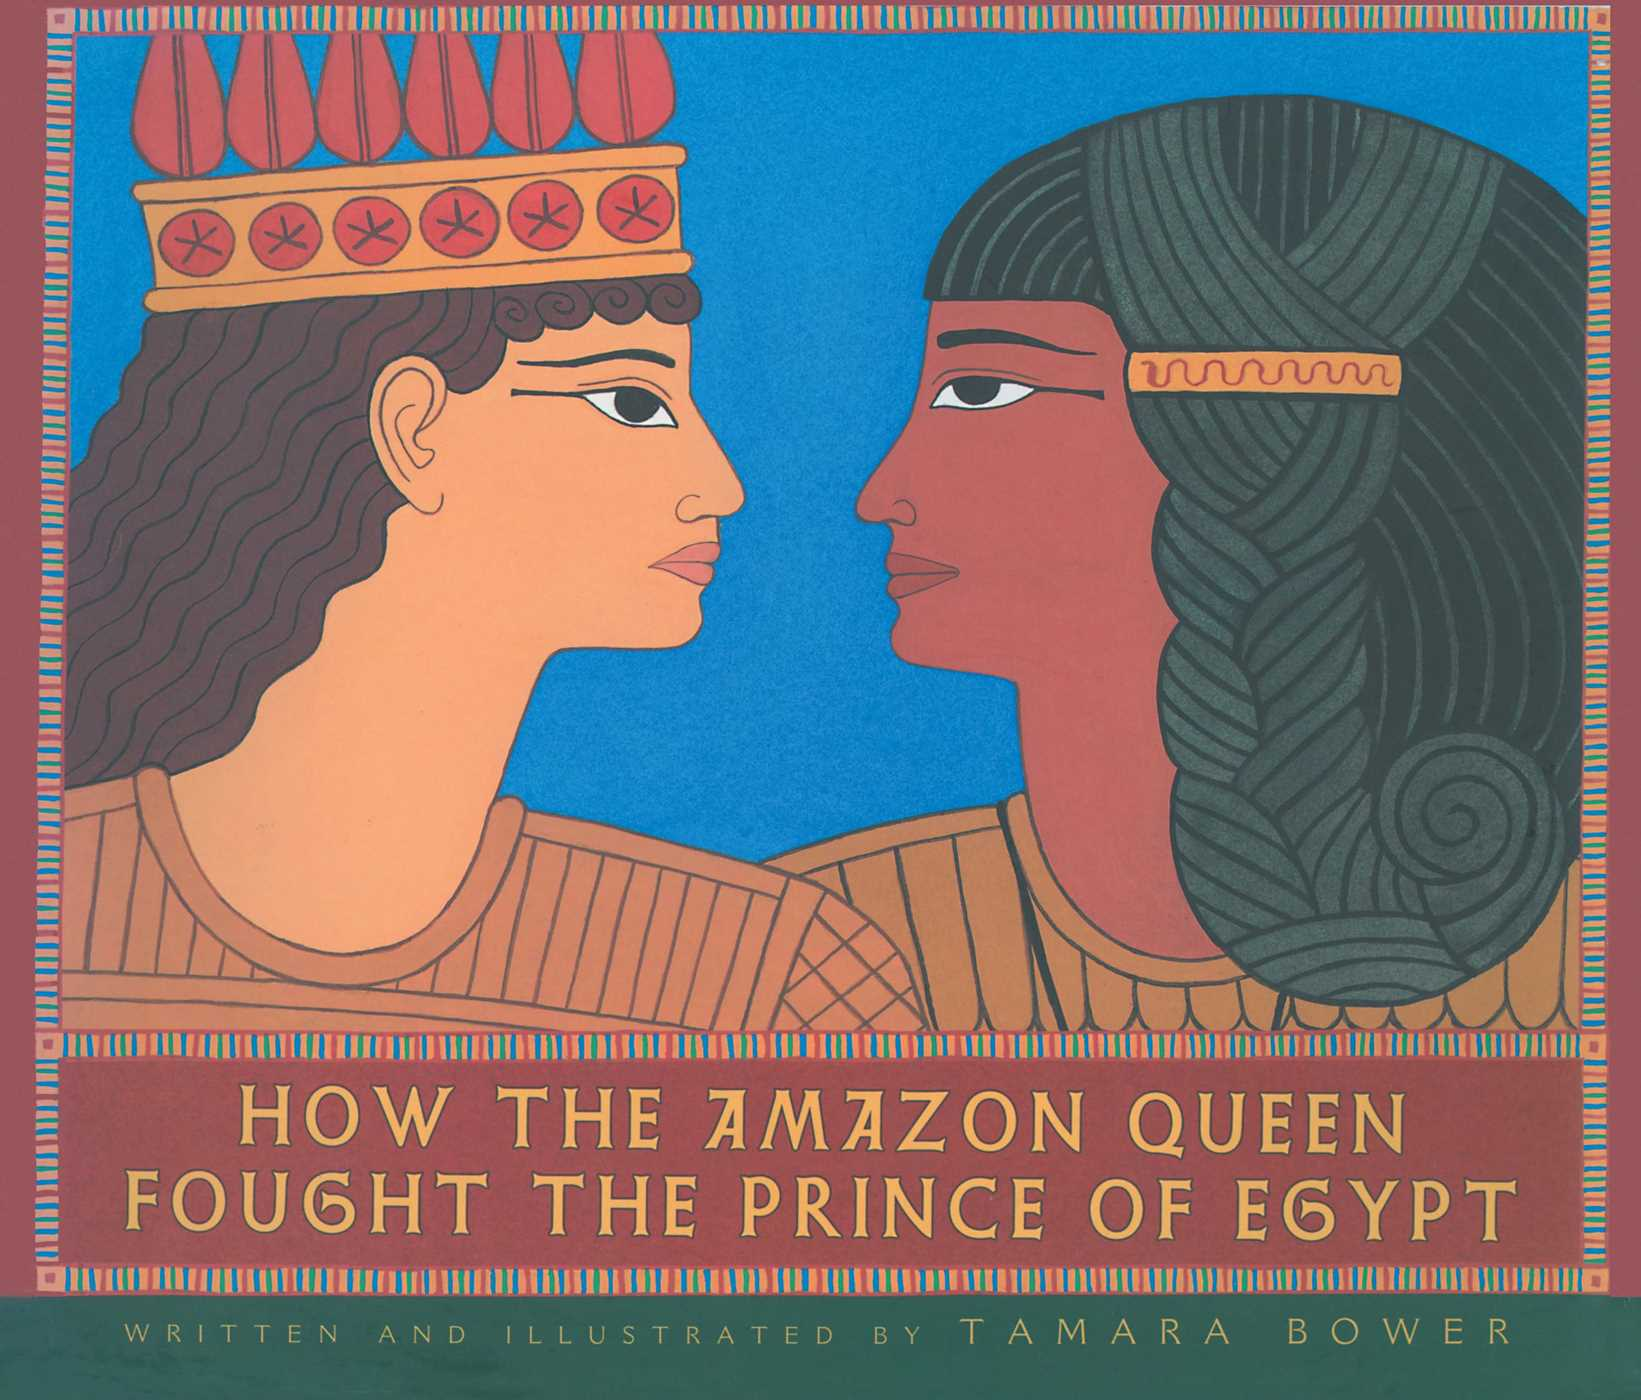 How-the-amazon-queen-fought-the-prince-of-egypt-9781481425261_hr